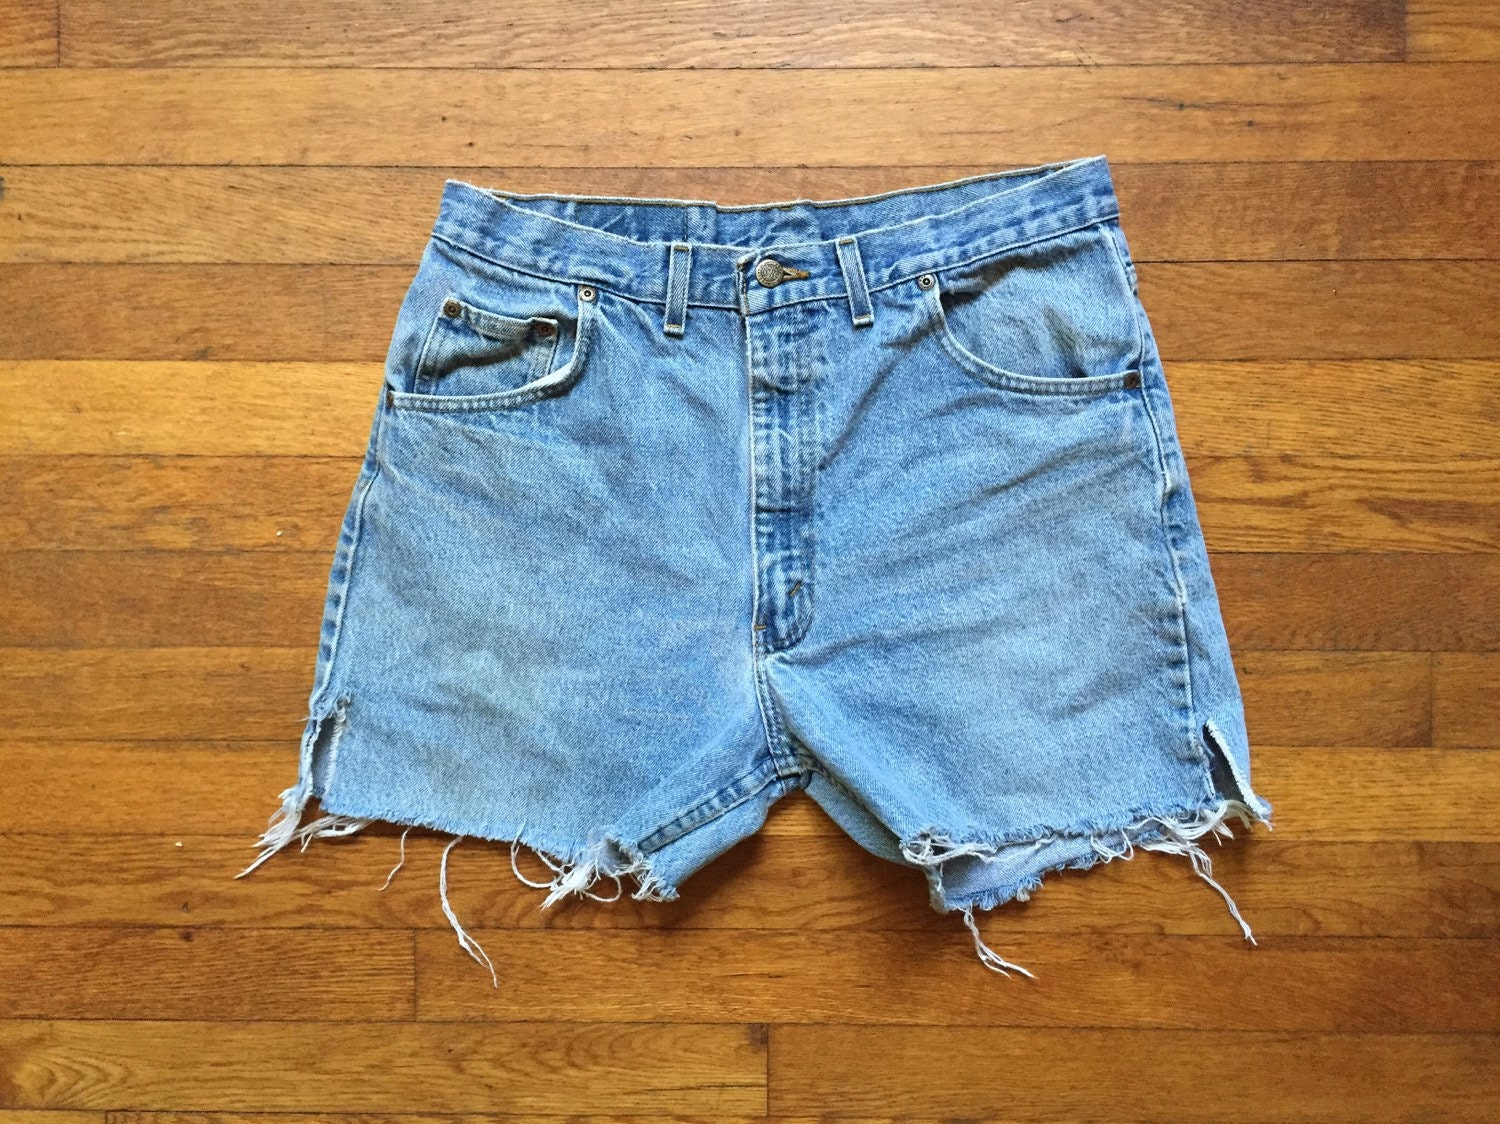 Cutoffs + Denim Shorts for Women. Cutoff shorts are the epitome of relaxed casual-cool. They add a whole new dimension of grungy chic to any piece in your wardrobe due to their distressed washes, super short raw hems, and well-worn, tomboy flavor.